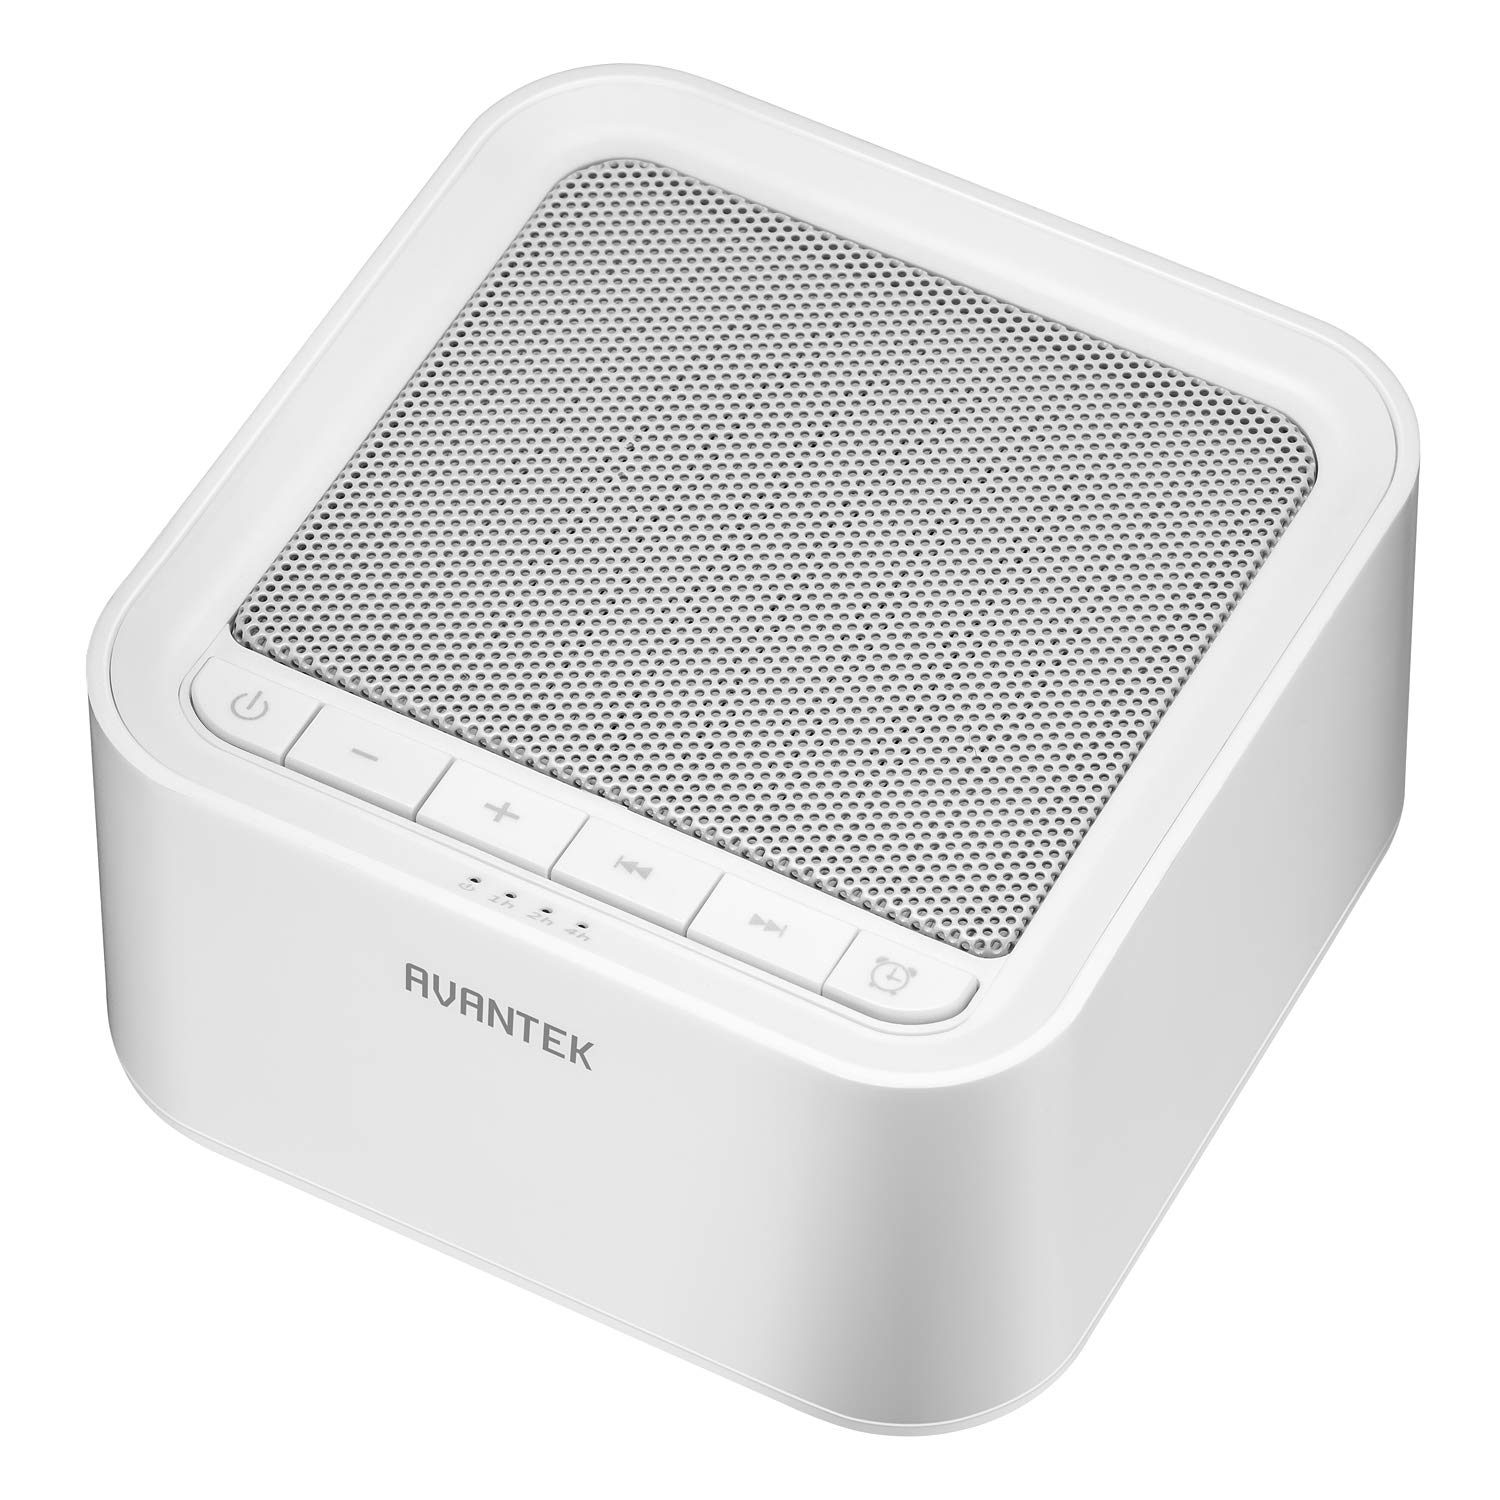 White Noise Machine, AVANTEK Sound Machine for Sleeping, 20 Non-Looping Soothing Sounds with High Quality Speaker & Memory Function, 30 Levels of Volume and 7 Timer Settings by AVANTEK